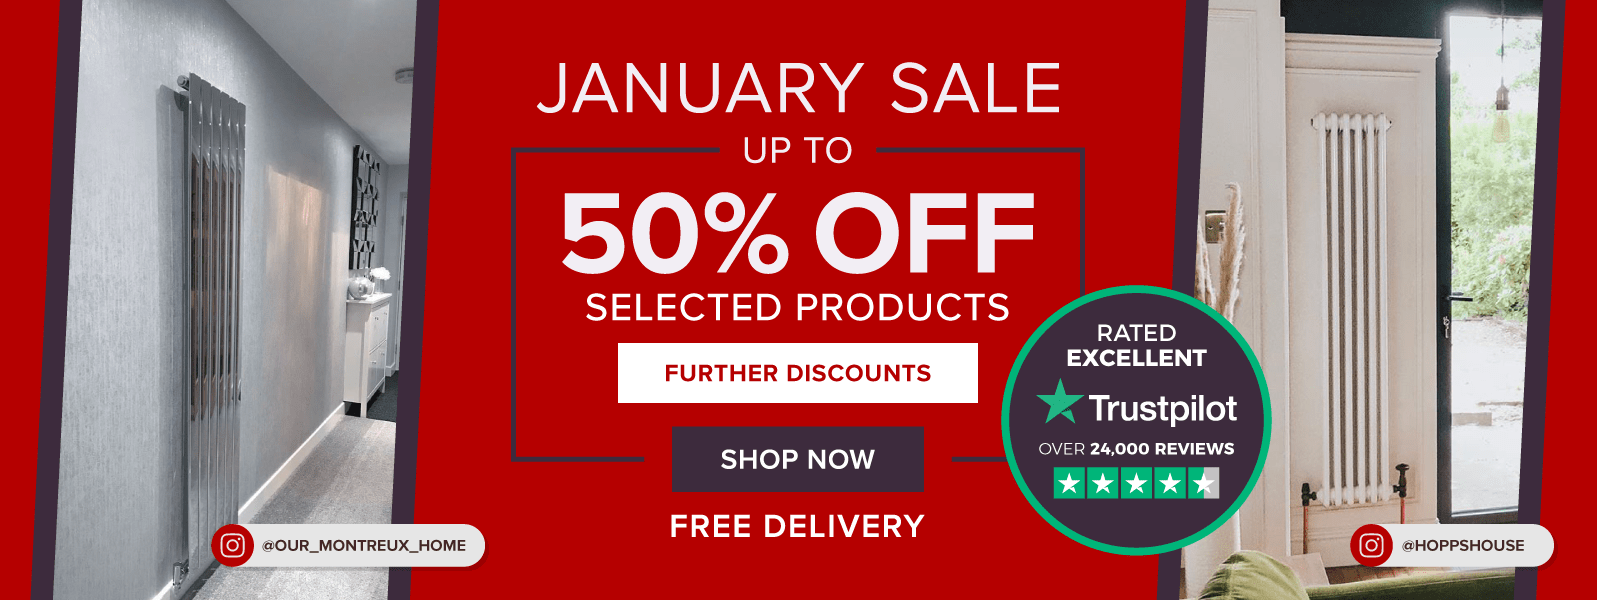 January Sale - Up to 50% OFF Selected Products - FREE DELIVERY